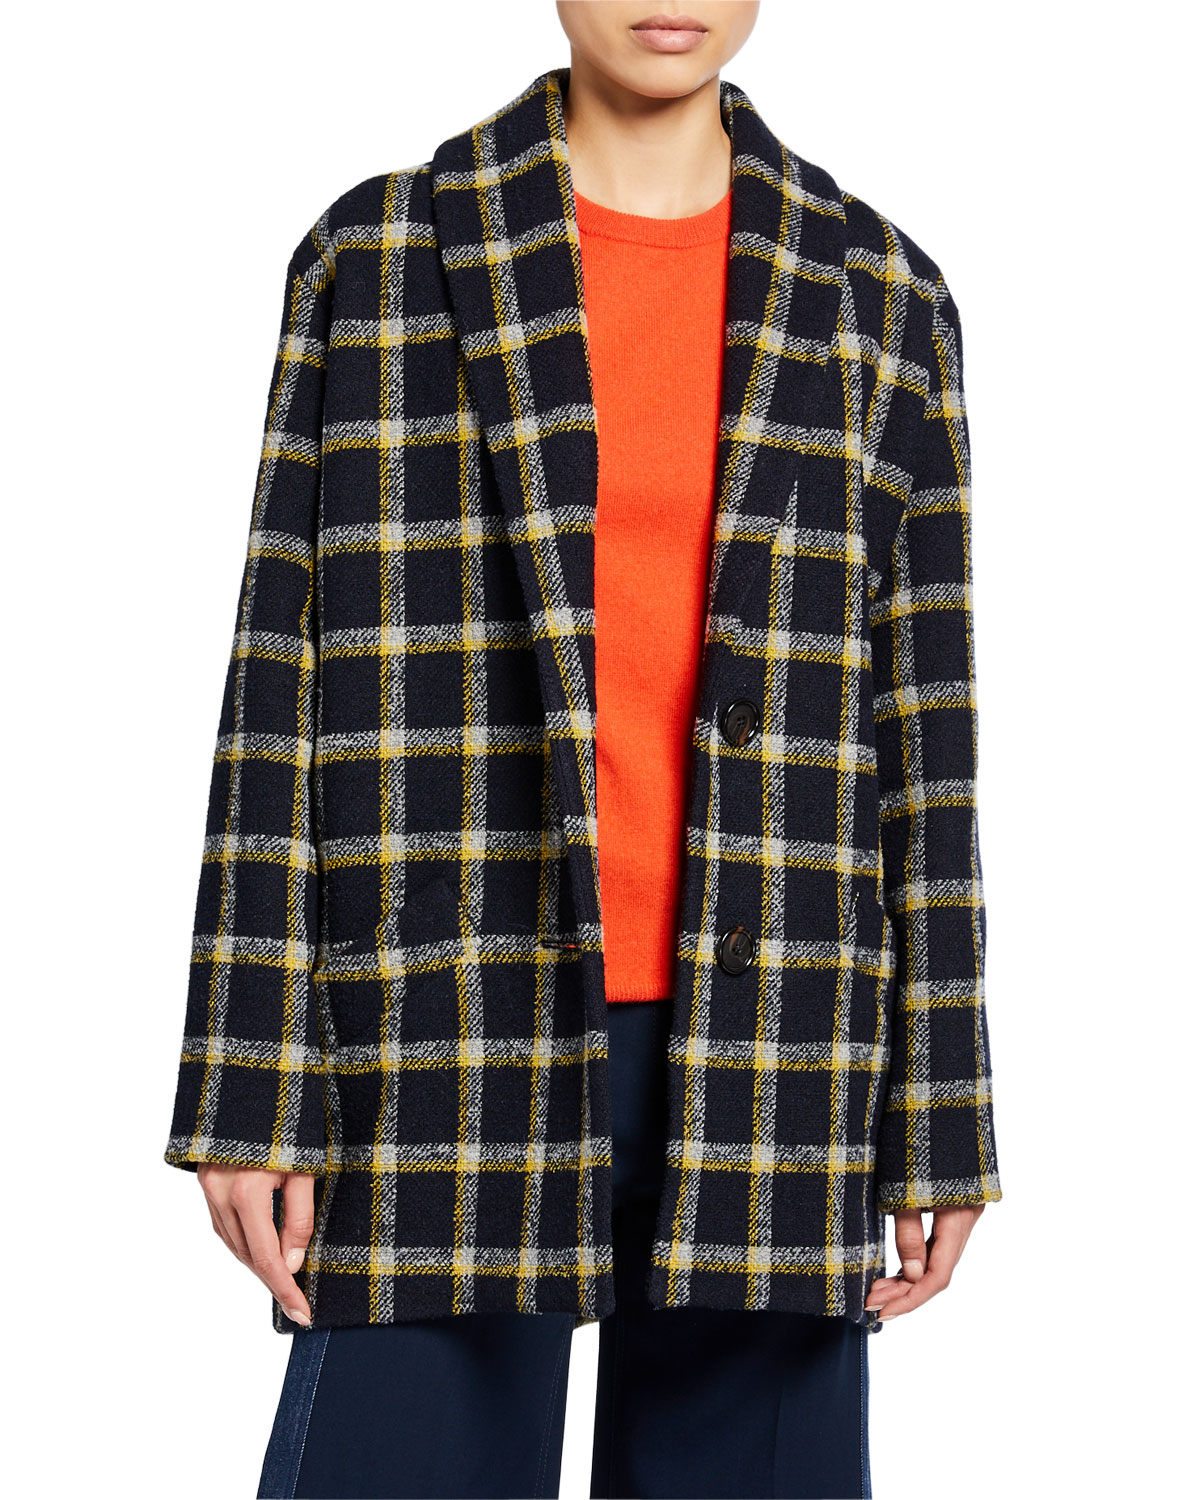 Derek Lam 10 Crosby Coats SHAWL-COLLAR CHECK COCOON COAT